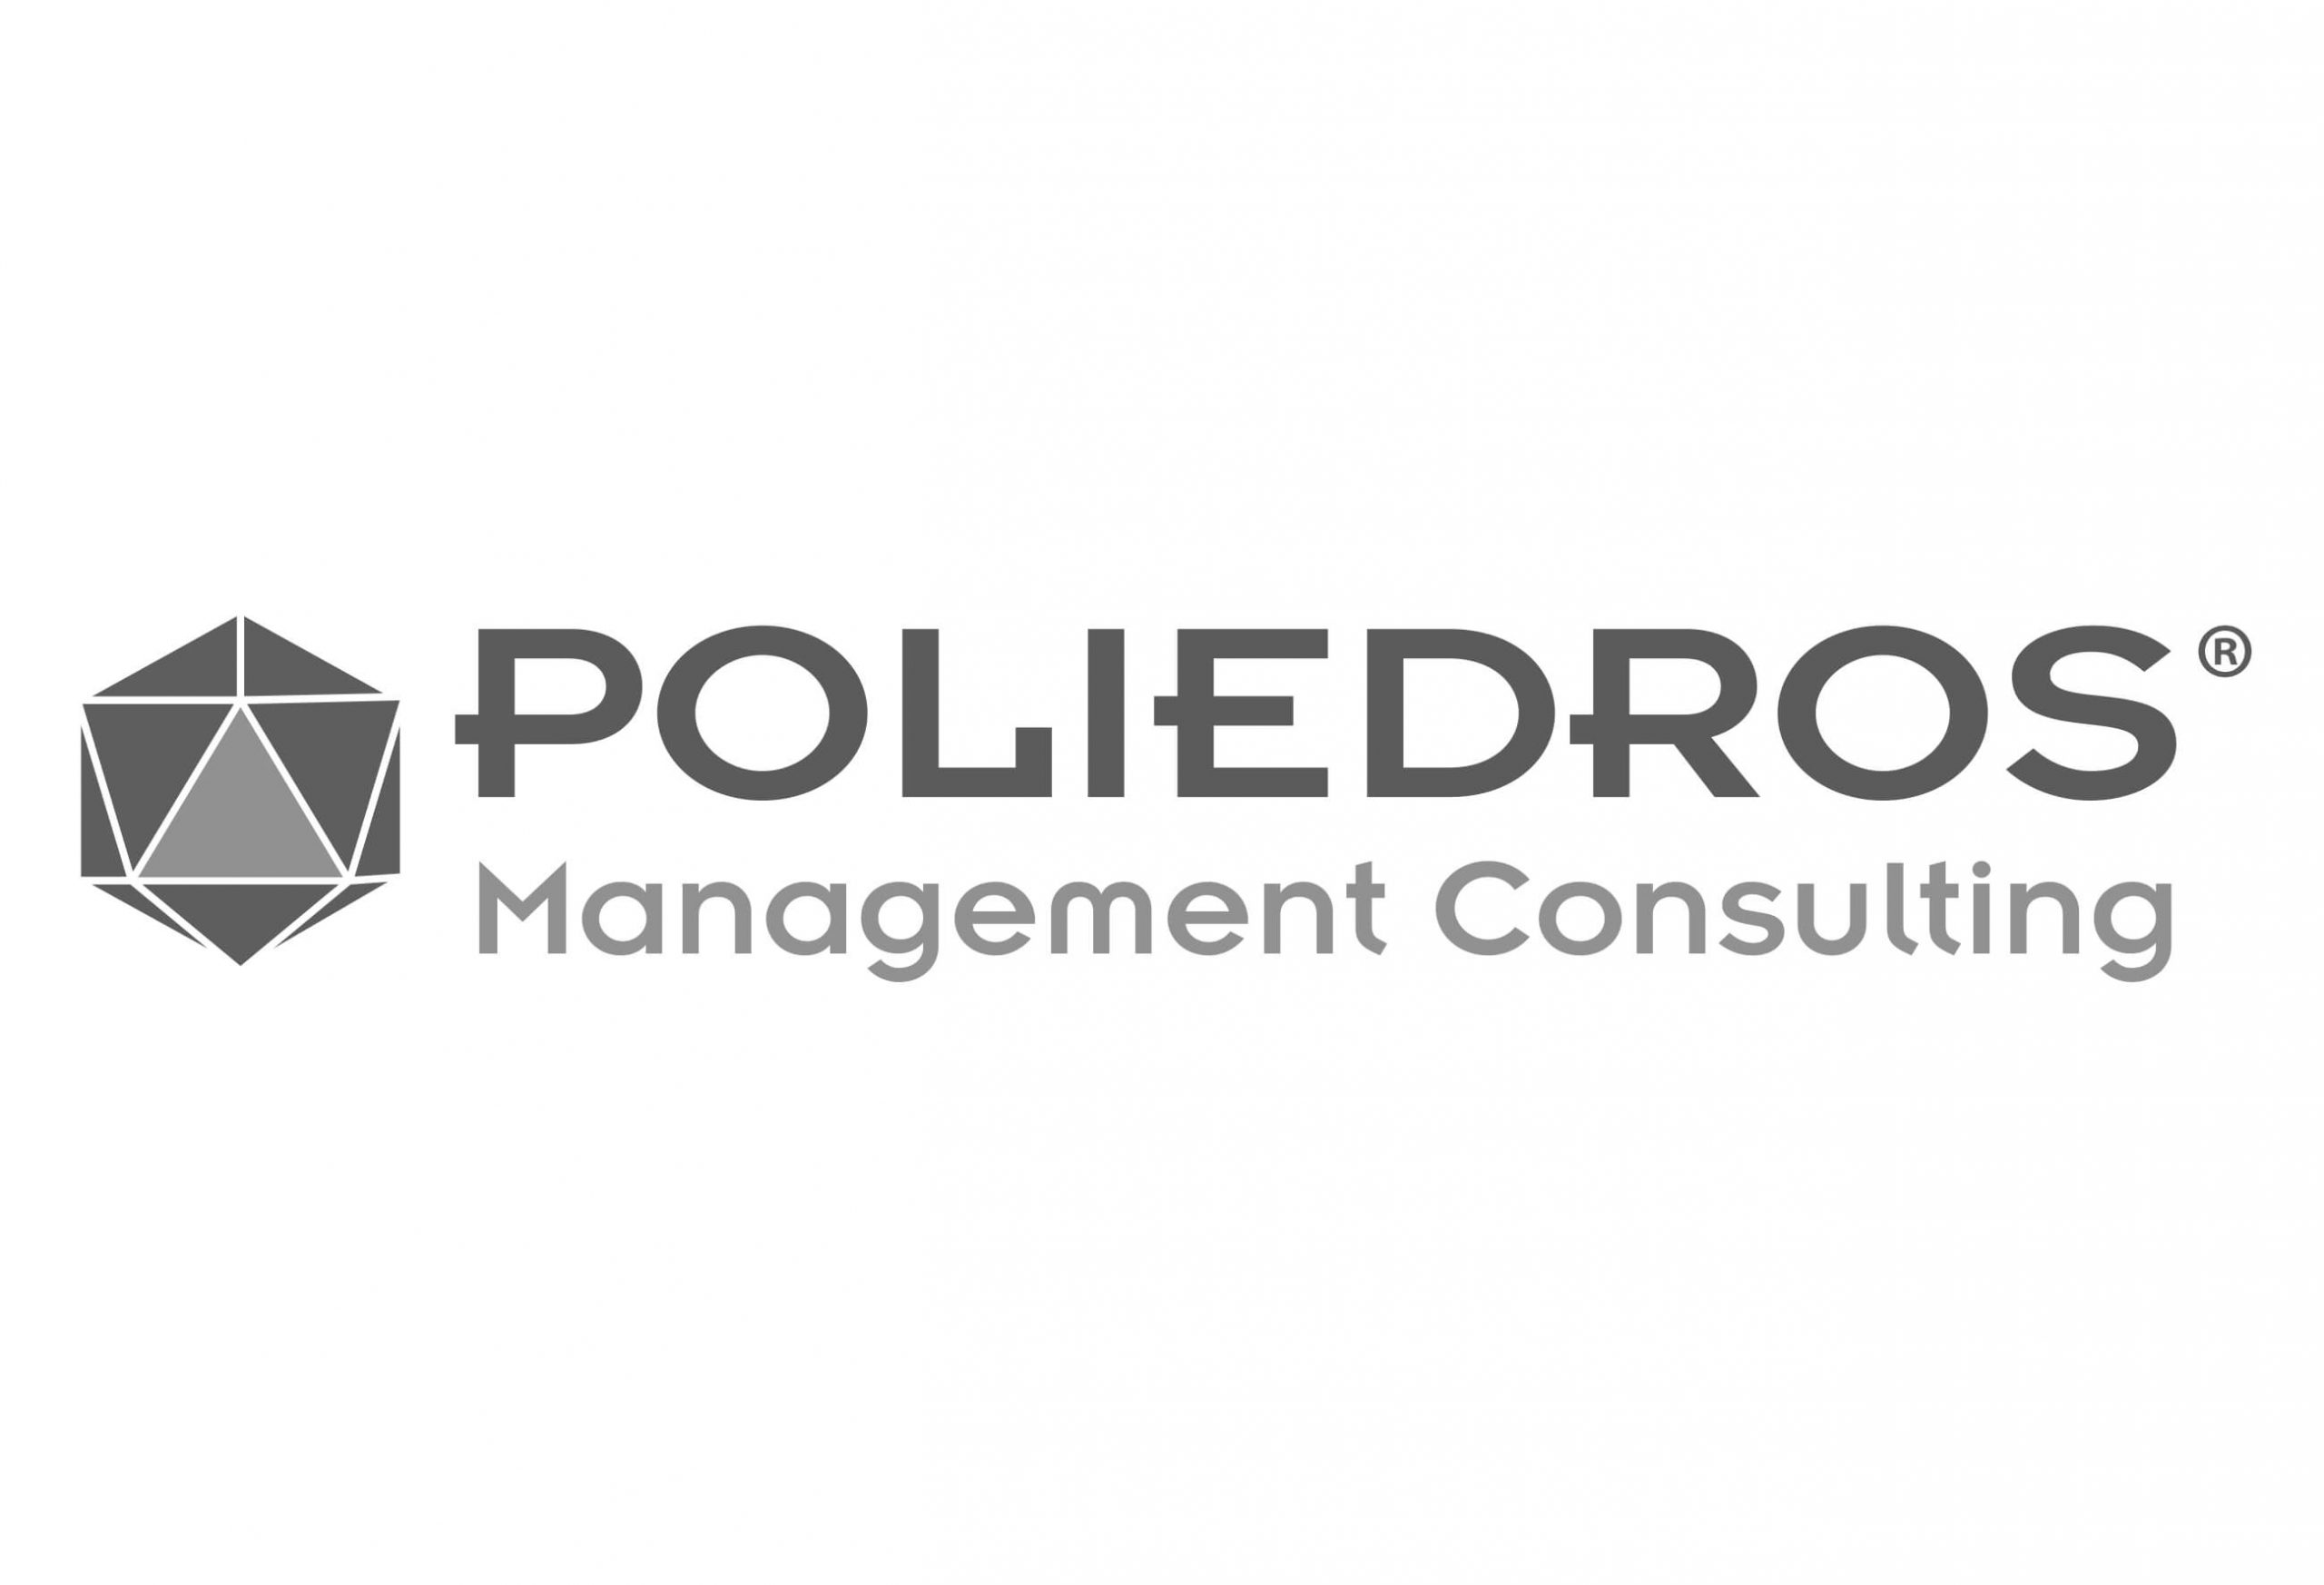 POLIEDROS CONSULTING